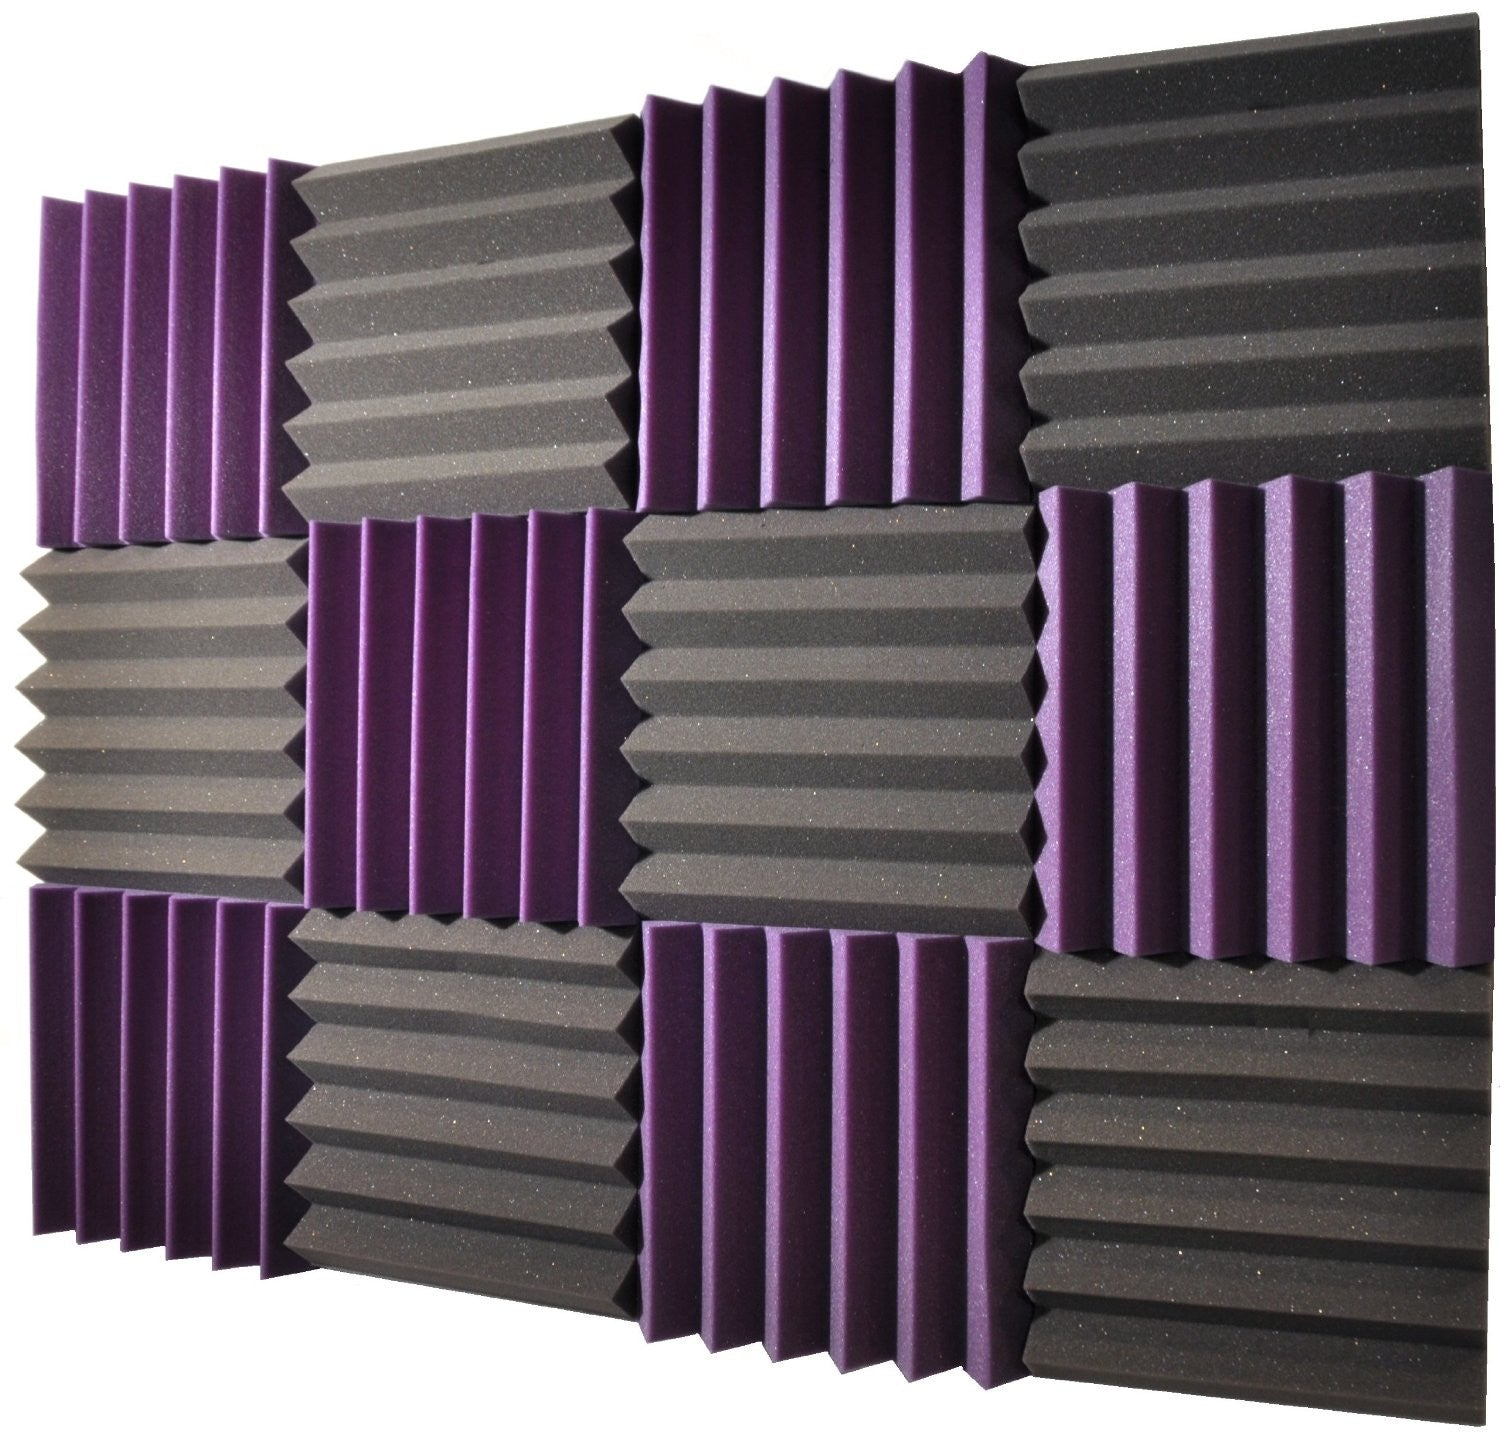 Image result for soundproofing foam